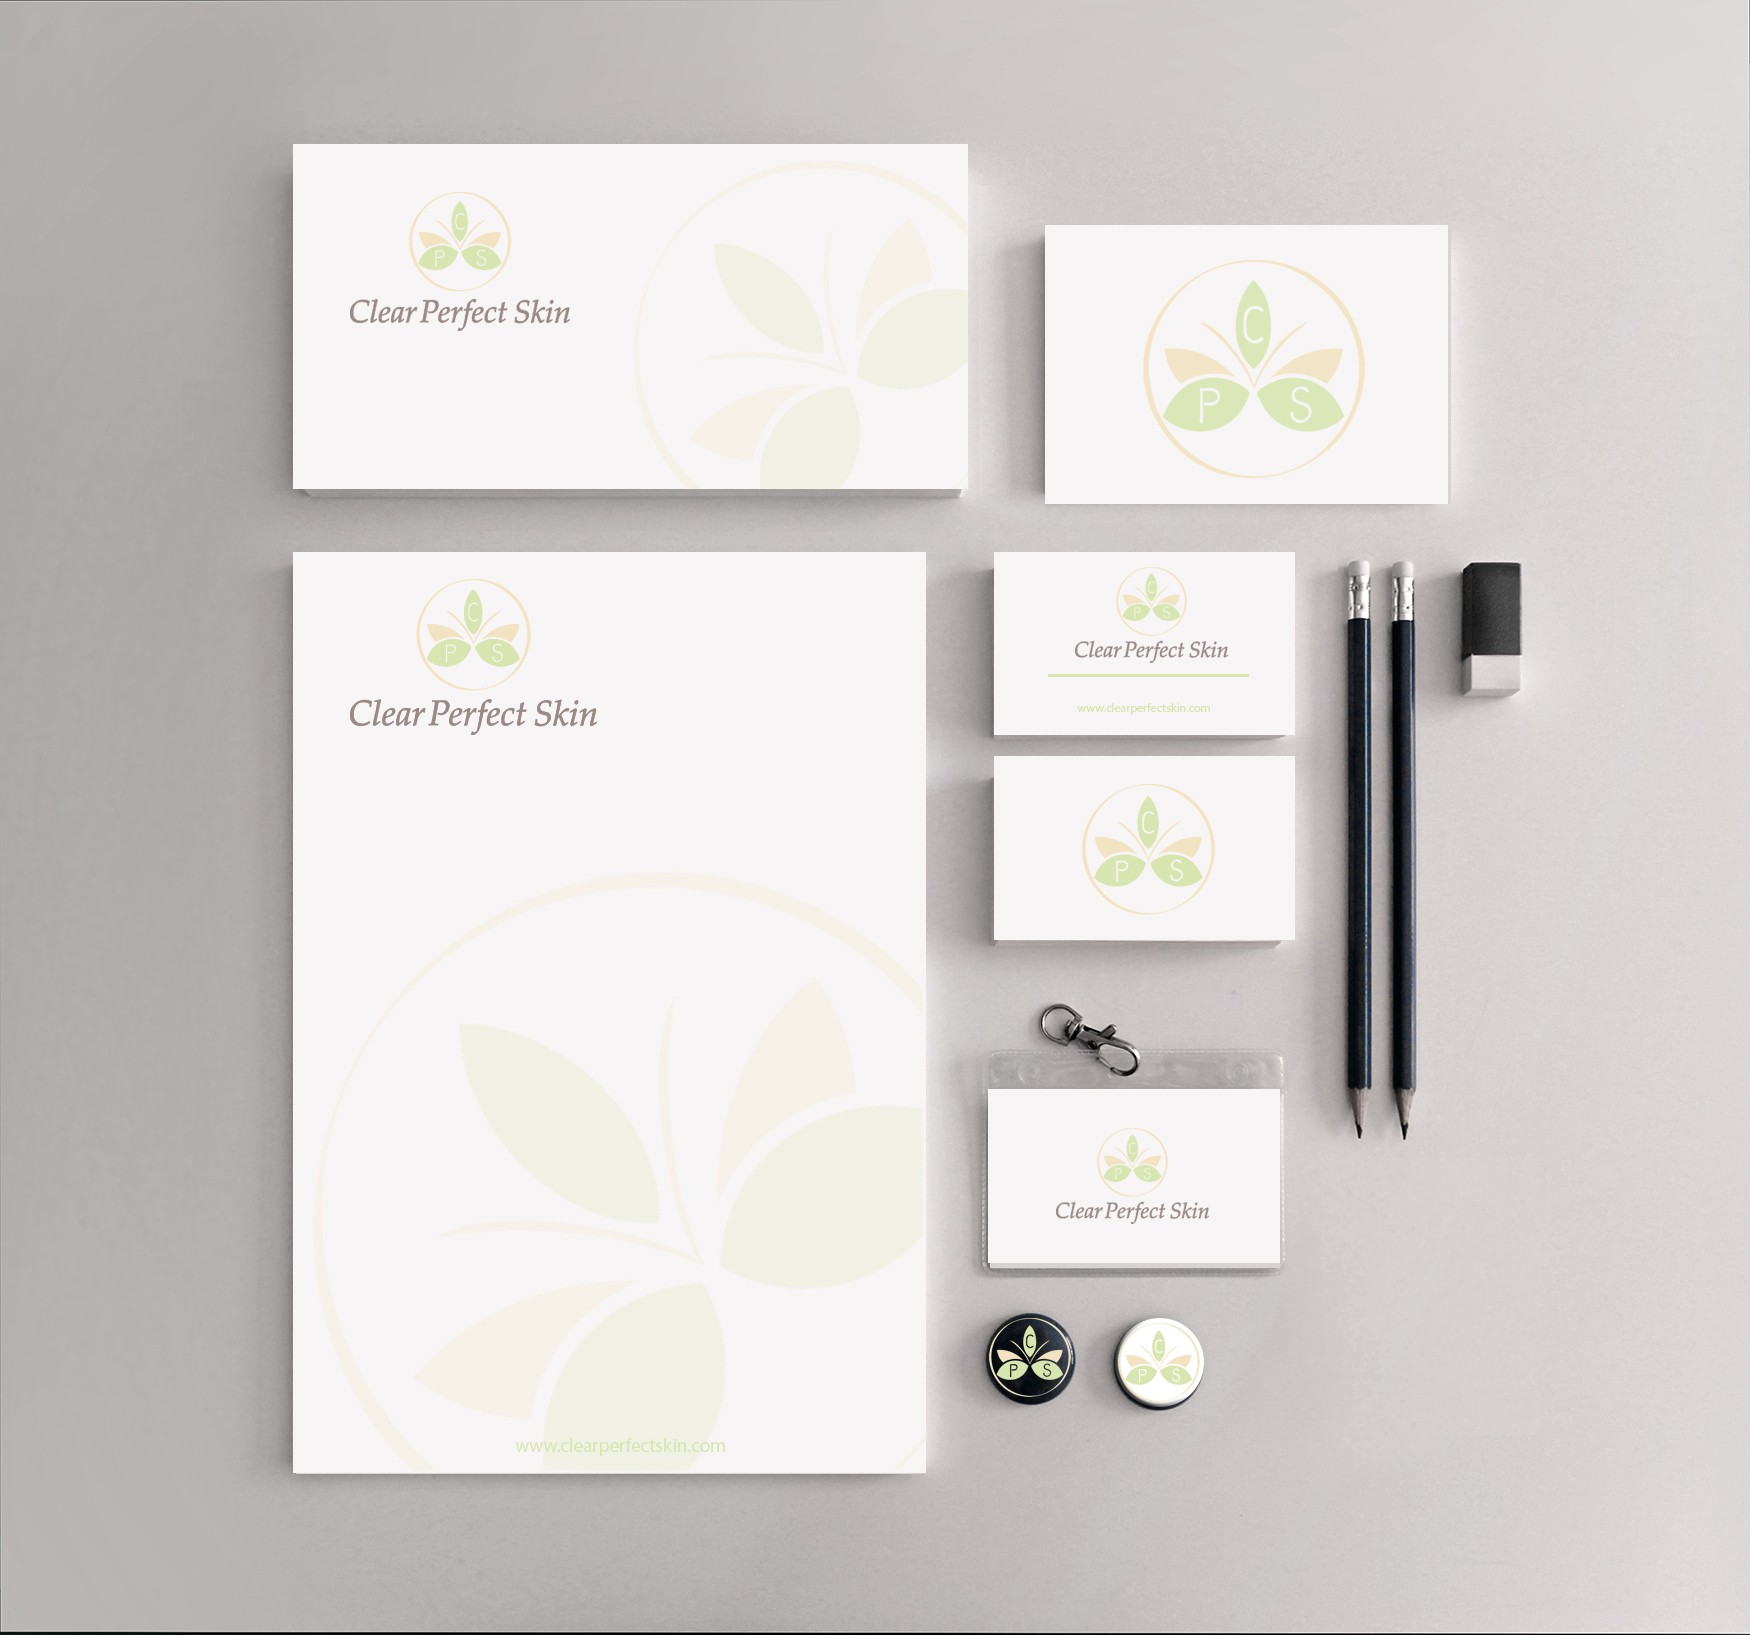 Create a classy elegant logo for products that give you clear perfect skin